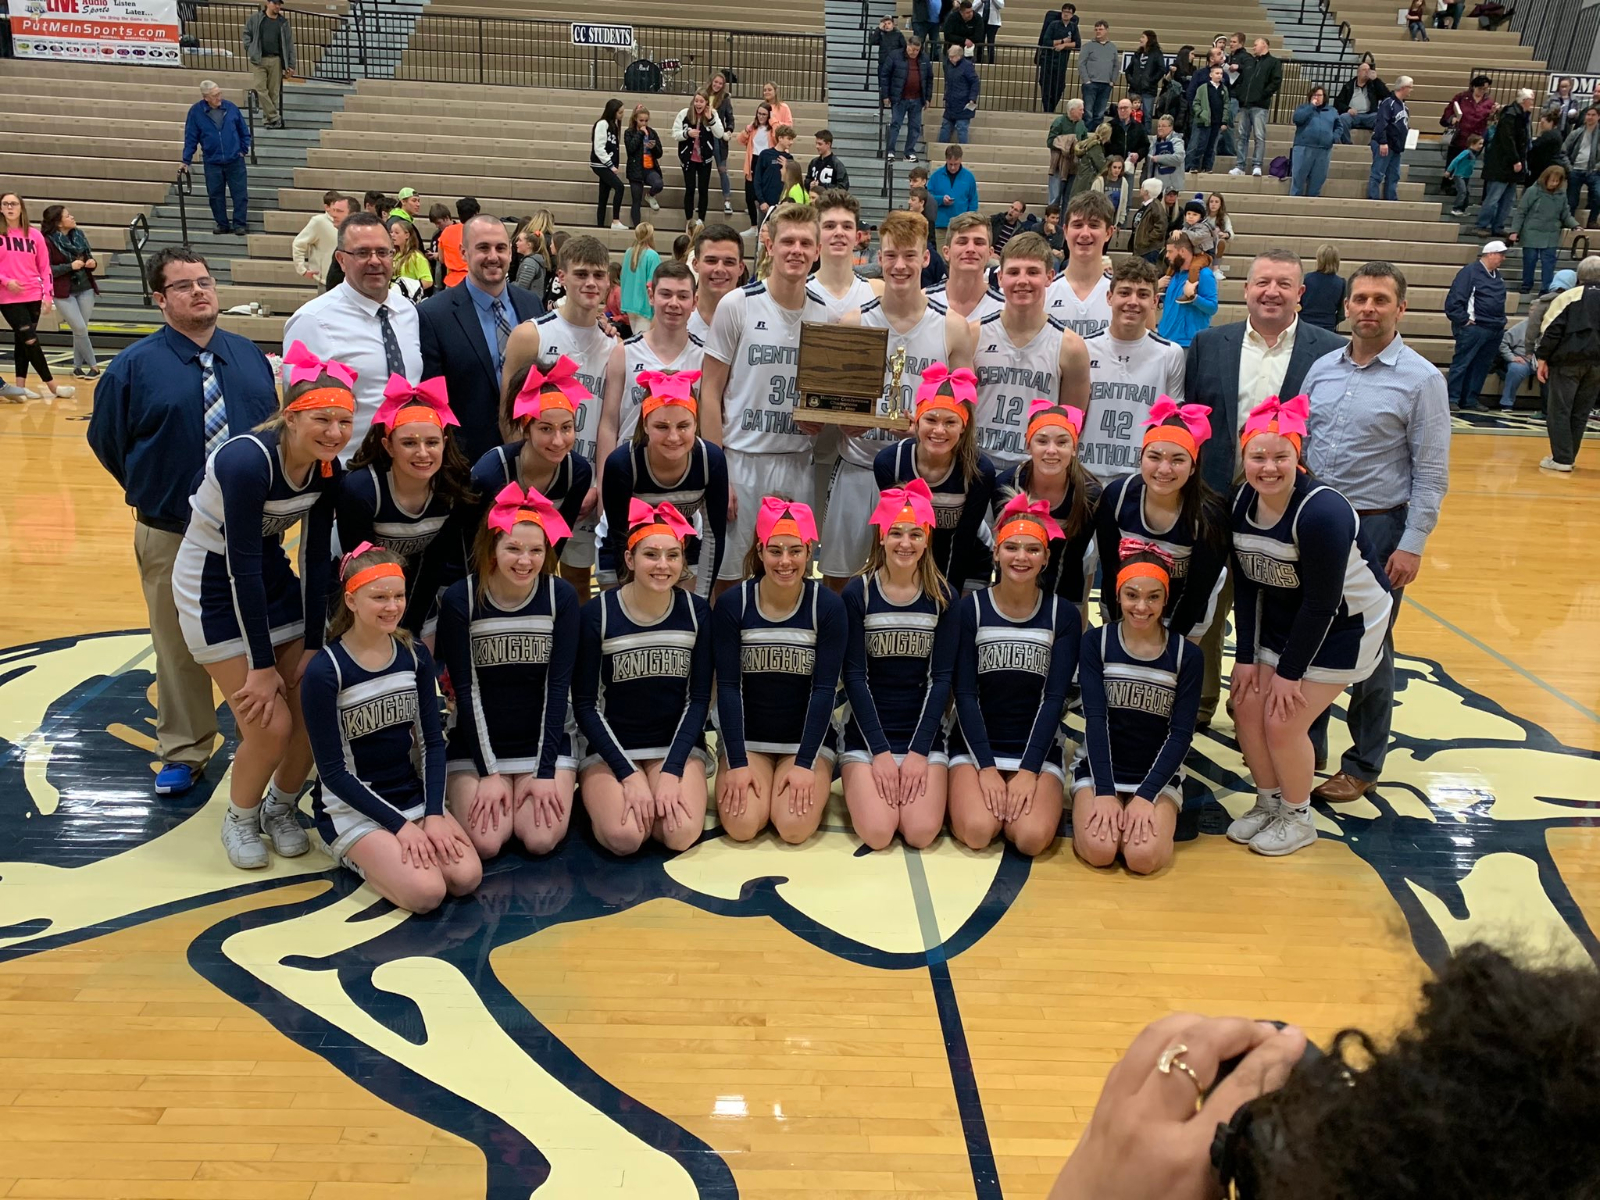 Knights Win Hoosier Conference Championship